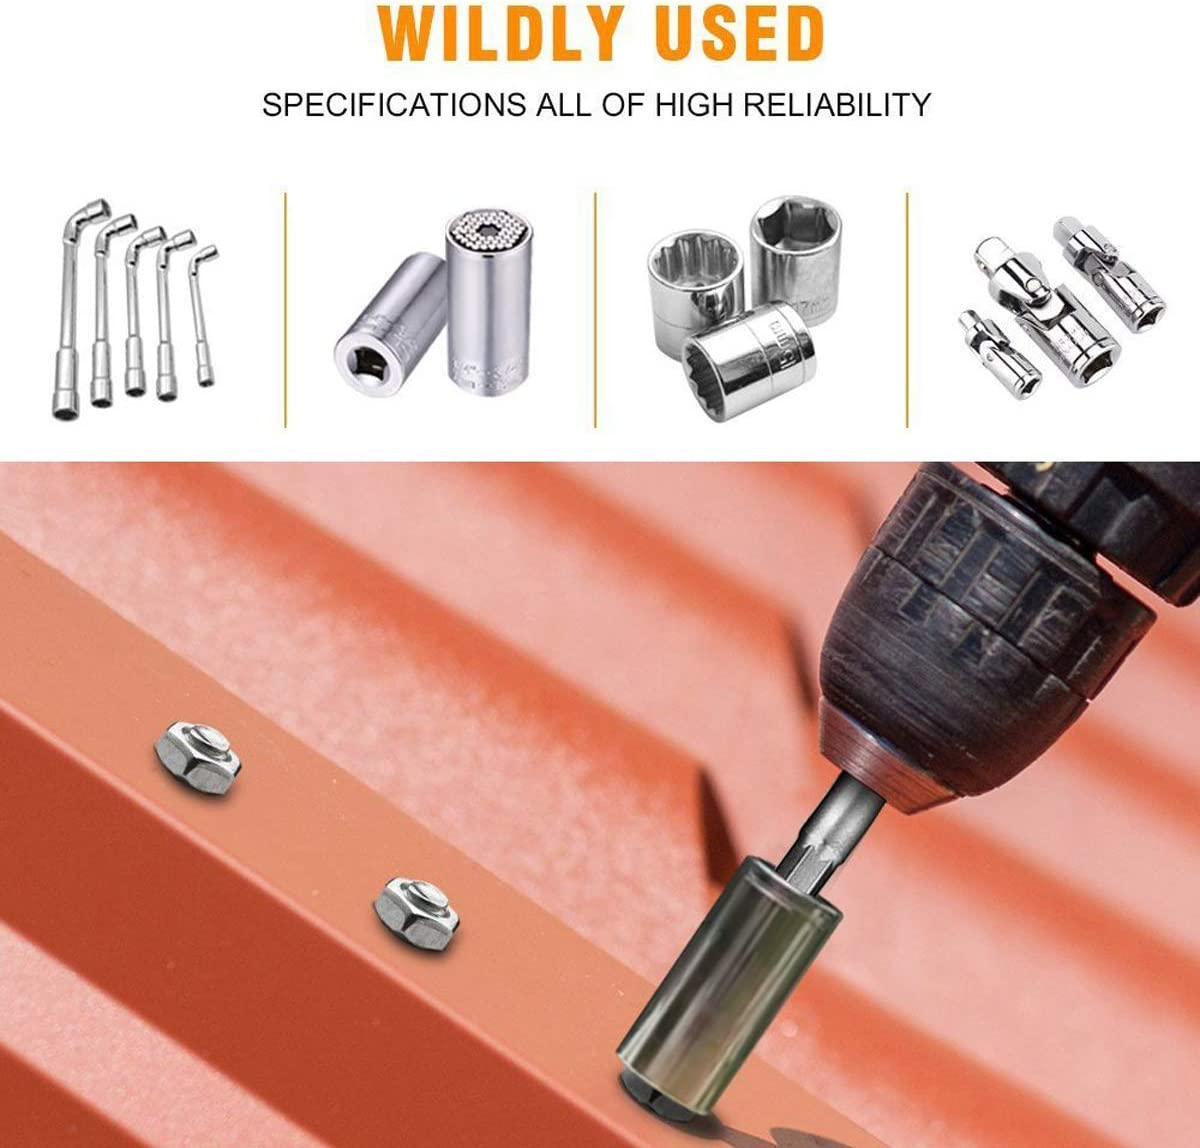 Socket Adapter 8 Piece Set 1//4 Hex Adapter to 1//4 3//8 1//2 Socket for Drill and Cordless Screwdriver Socket Nuts and Sockets Bit Holder